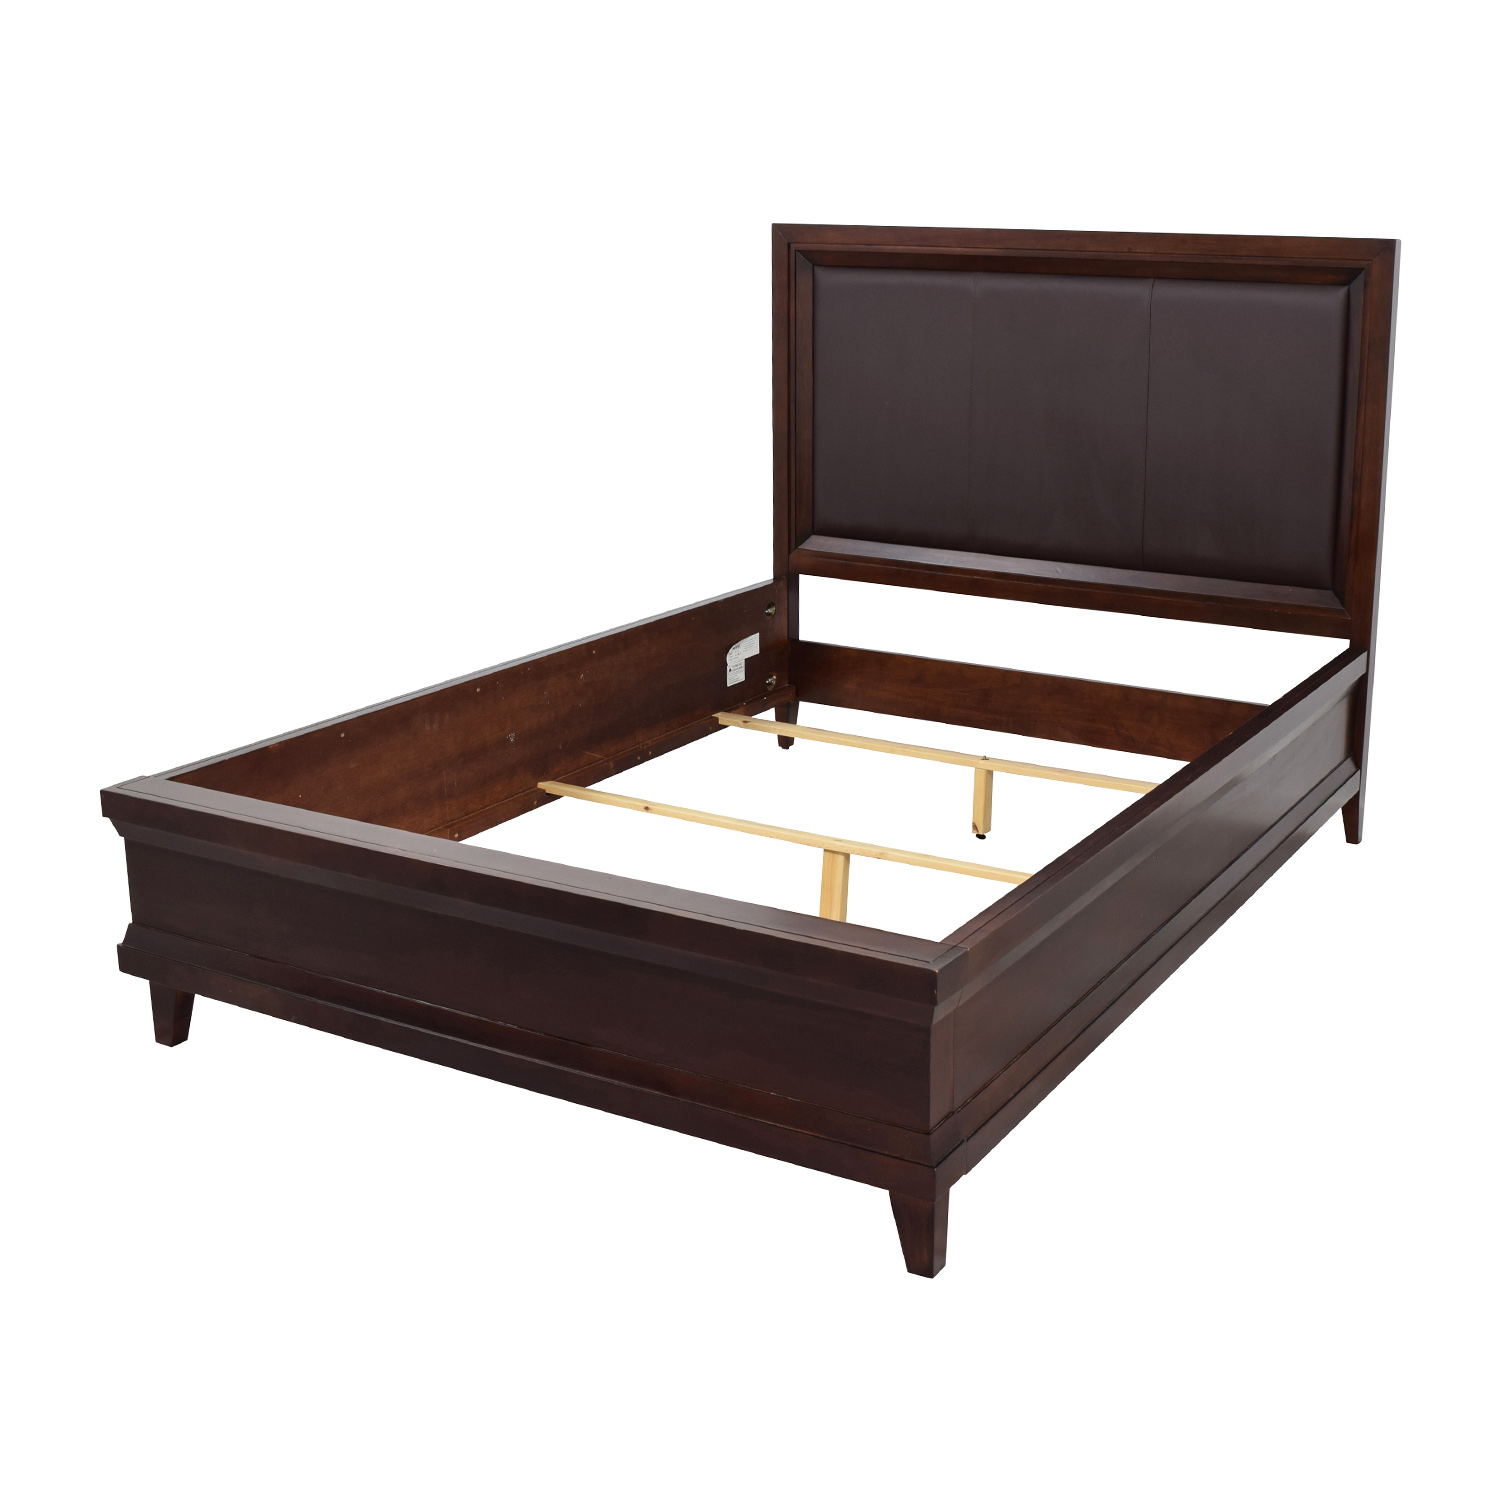 Does Raymour And Flanigan Sell Adjustable Beds : Raymour and flanigan bed frames